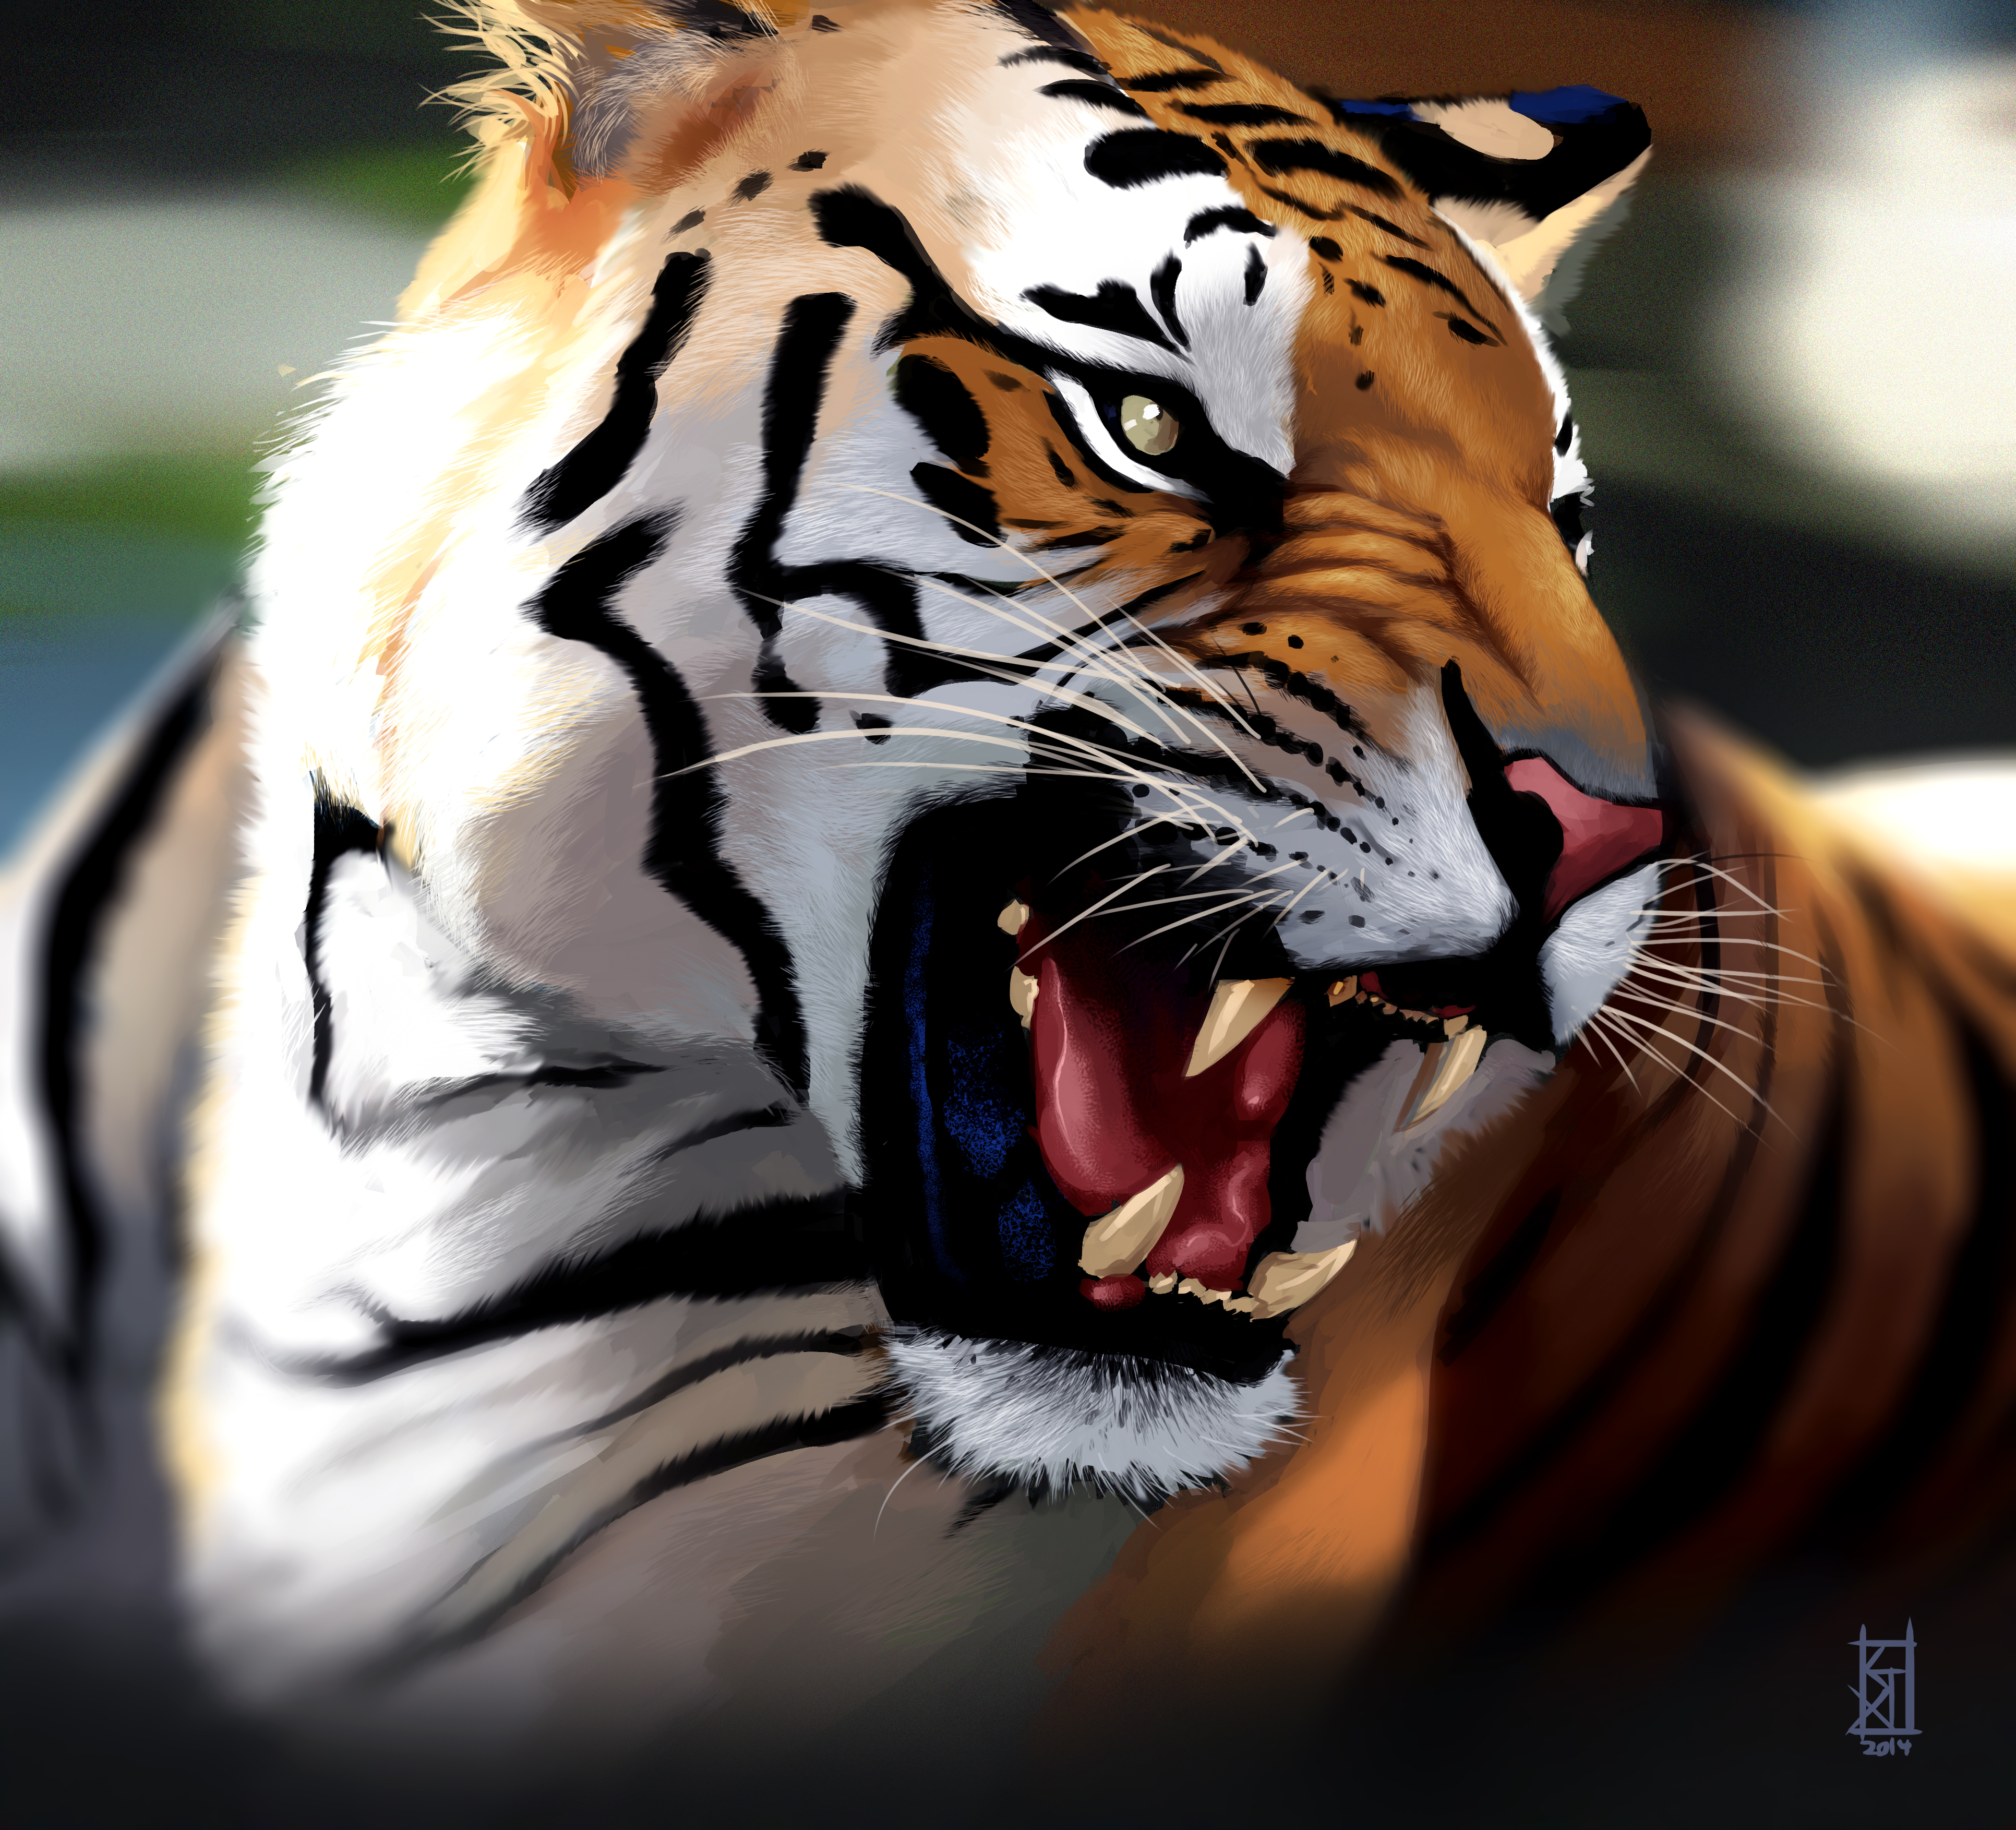 Tiger Wallpapers, Pictures, Images